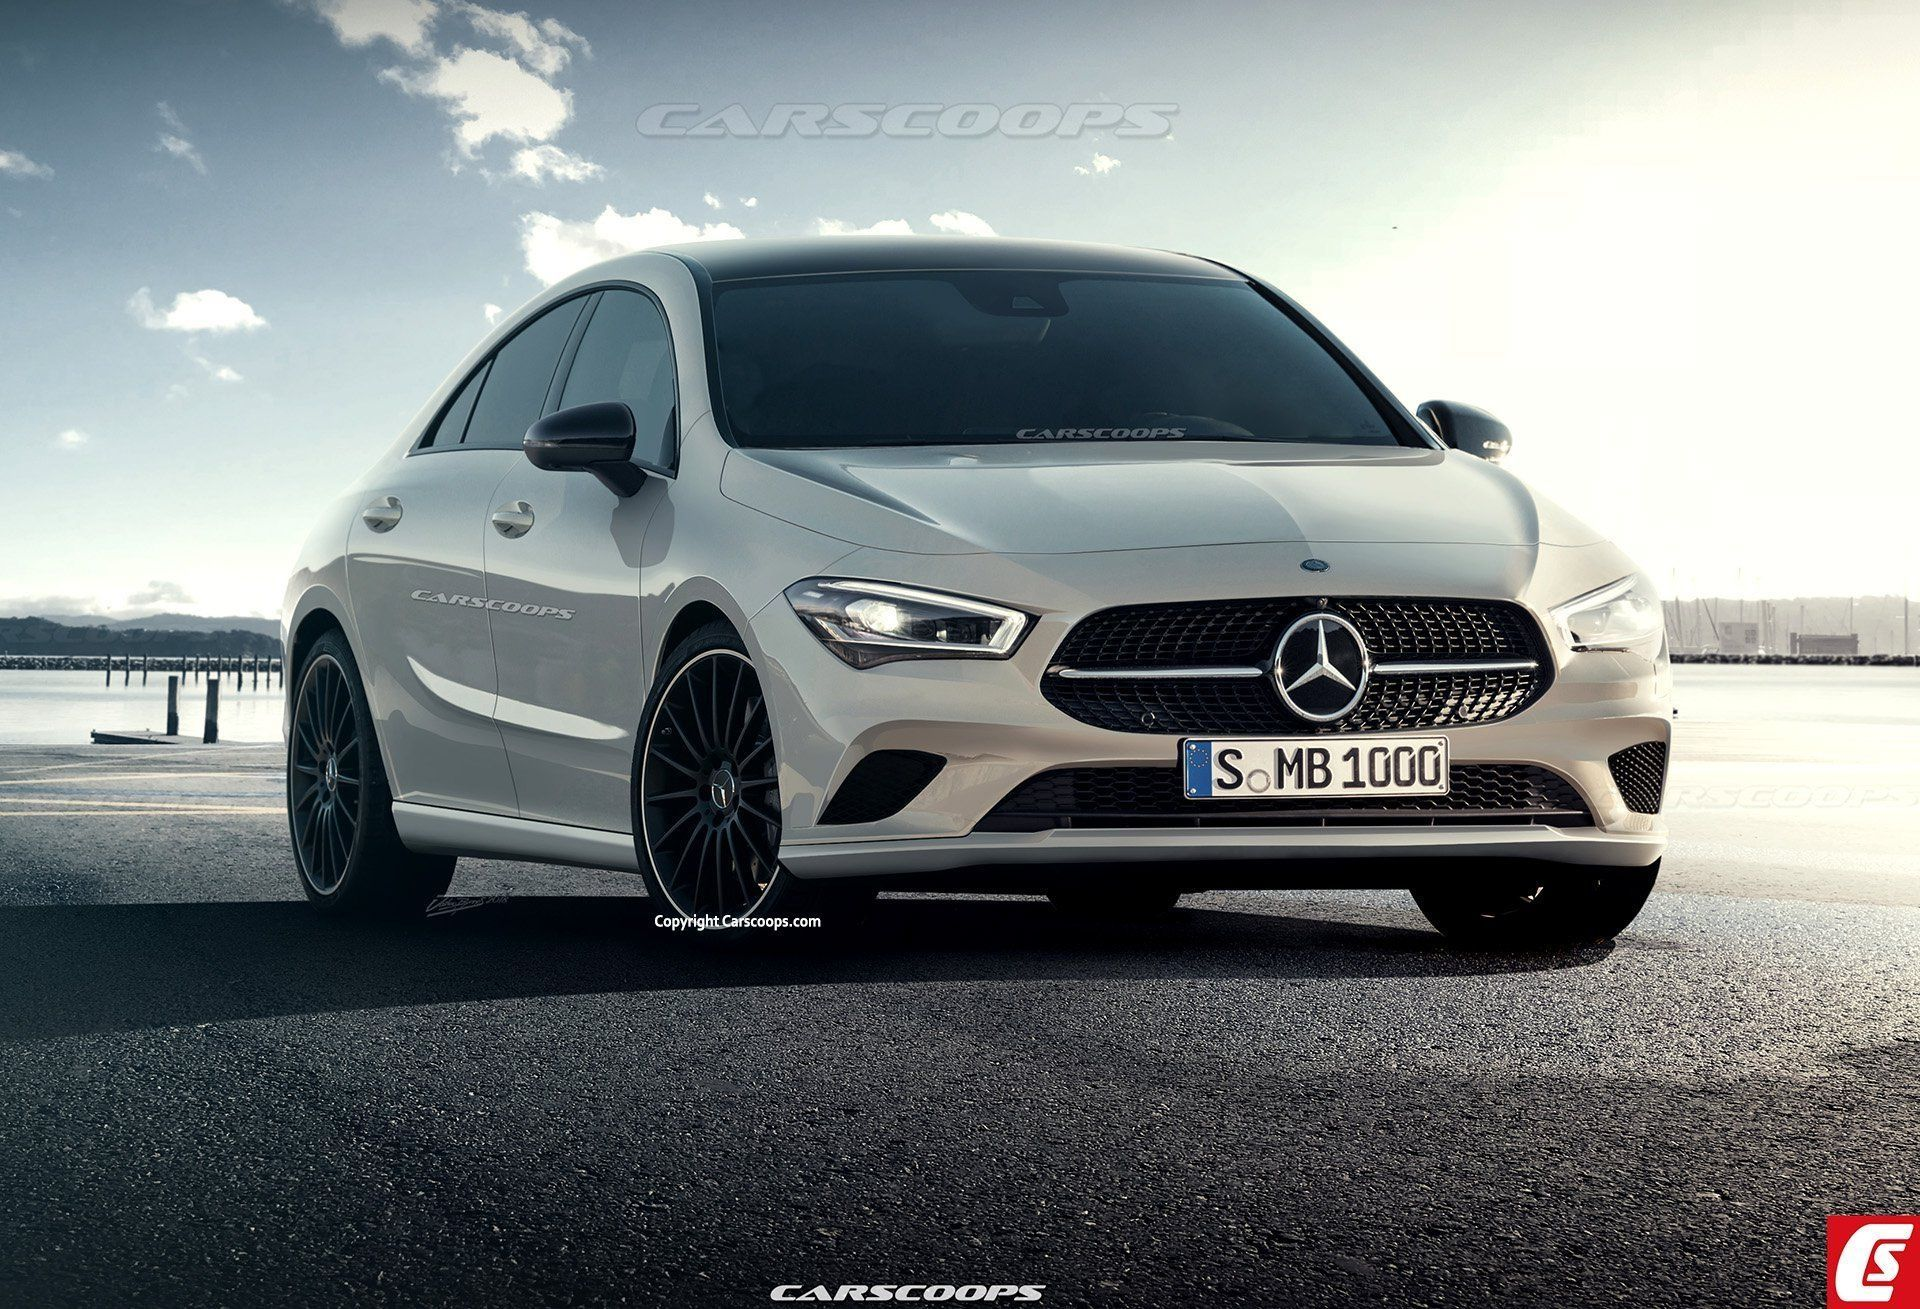 Mercedes Cla 2020 New Concept Check More At Http Www Autocars1